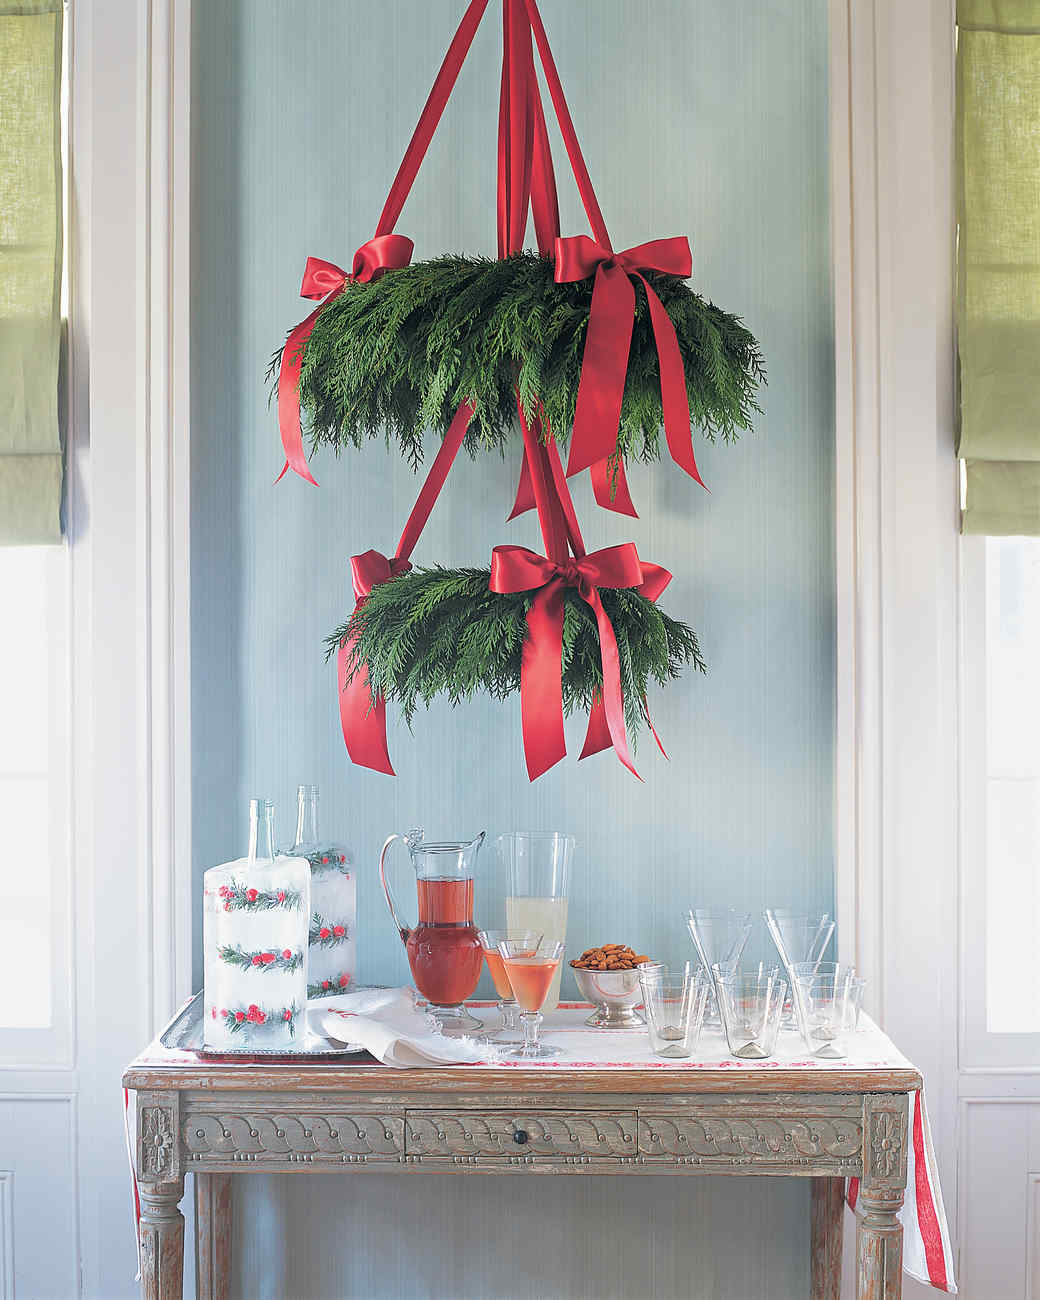 Holiday Decor Ideas Christmas: Quick Christmas Decorating Ideas